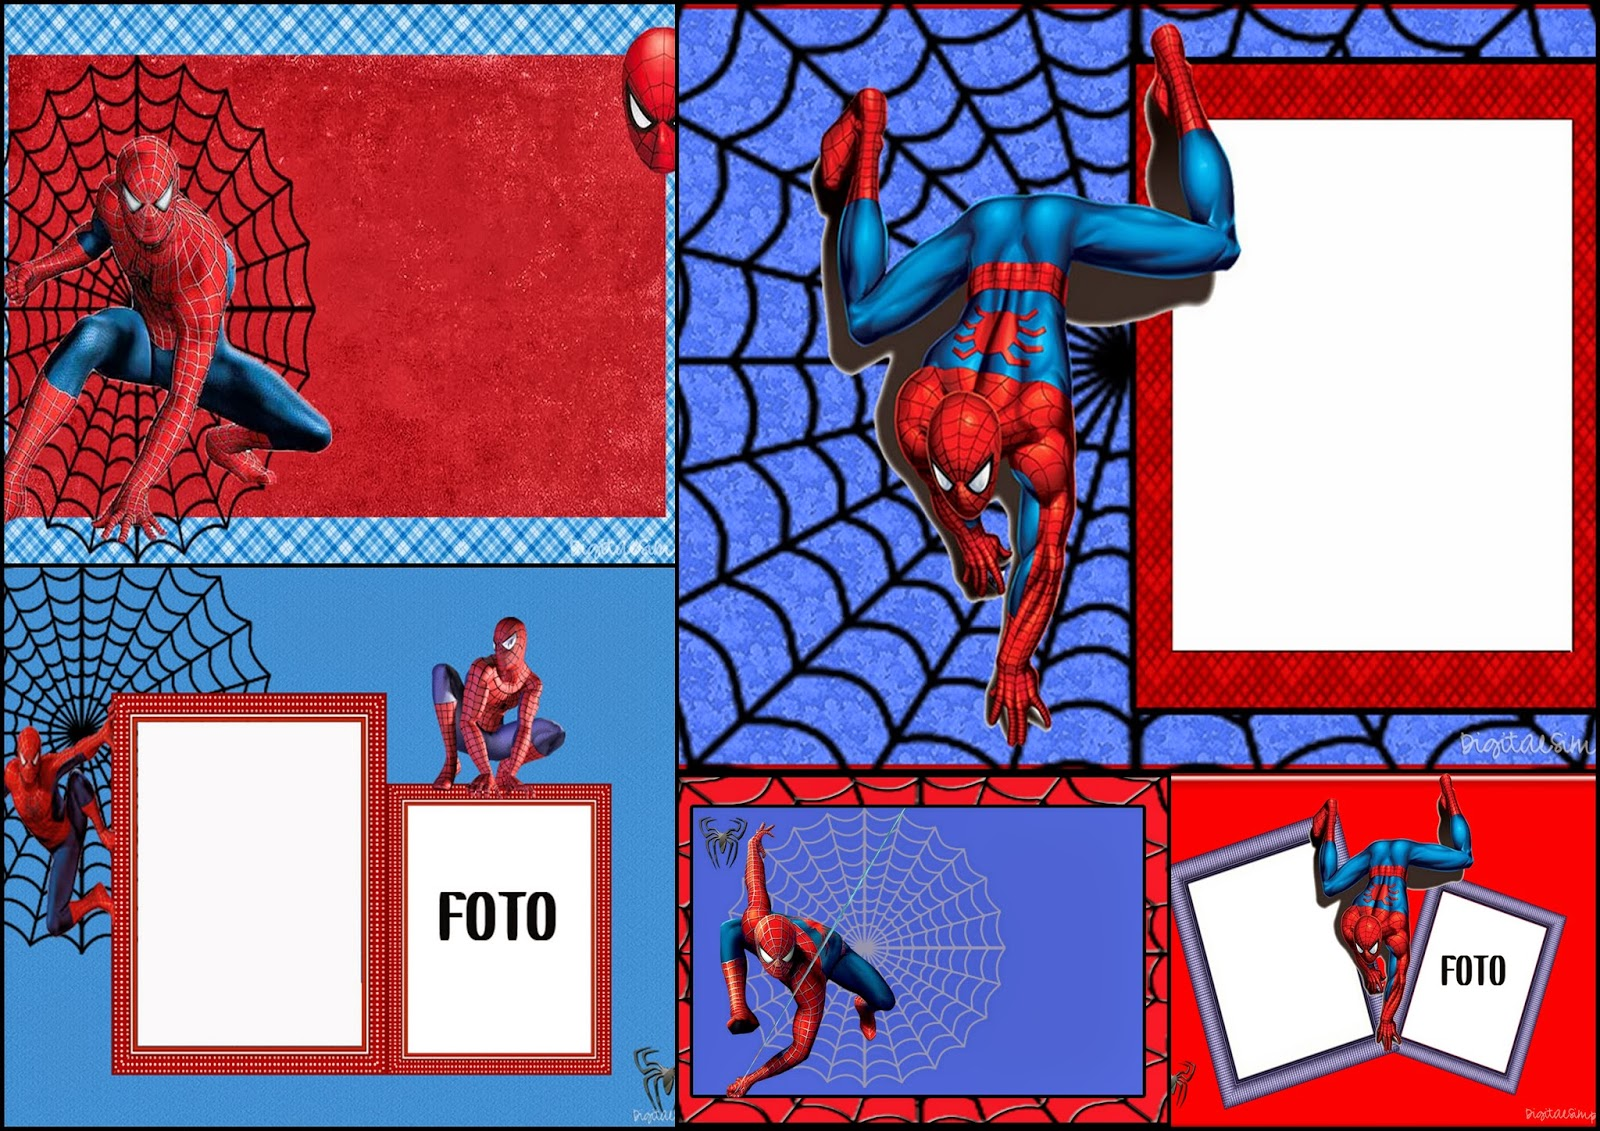 Spiderman Free Printable Invitations Cards Or Photo Frames Oh - Spiderman birthday invitation maker free